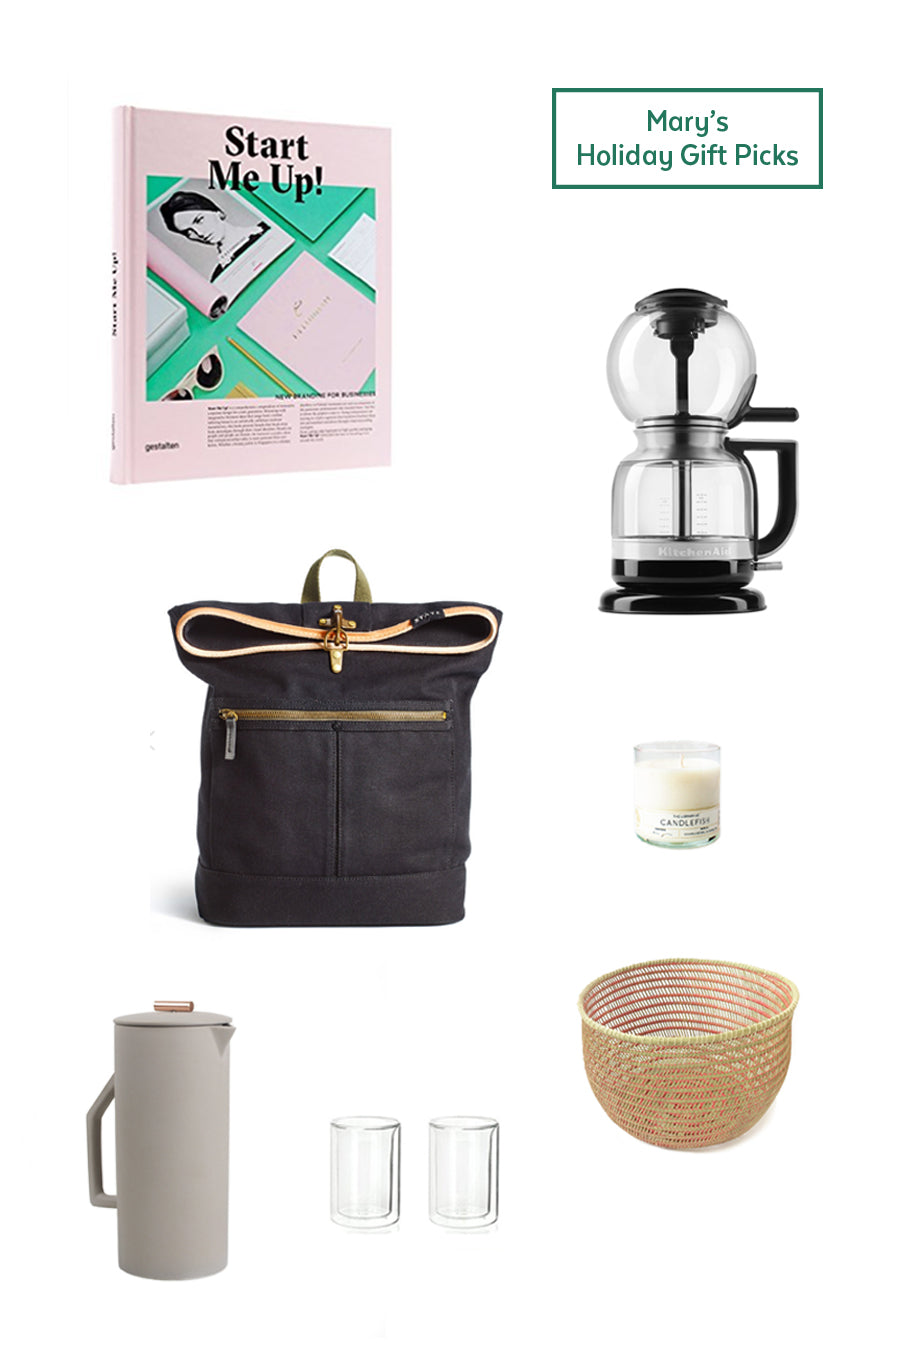 Mary's Holiday Gift Picks